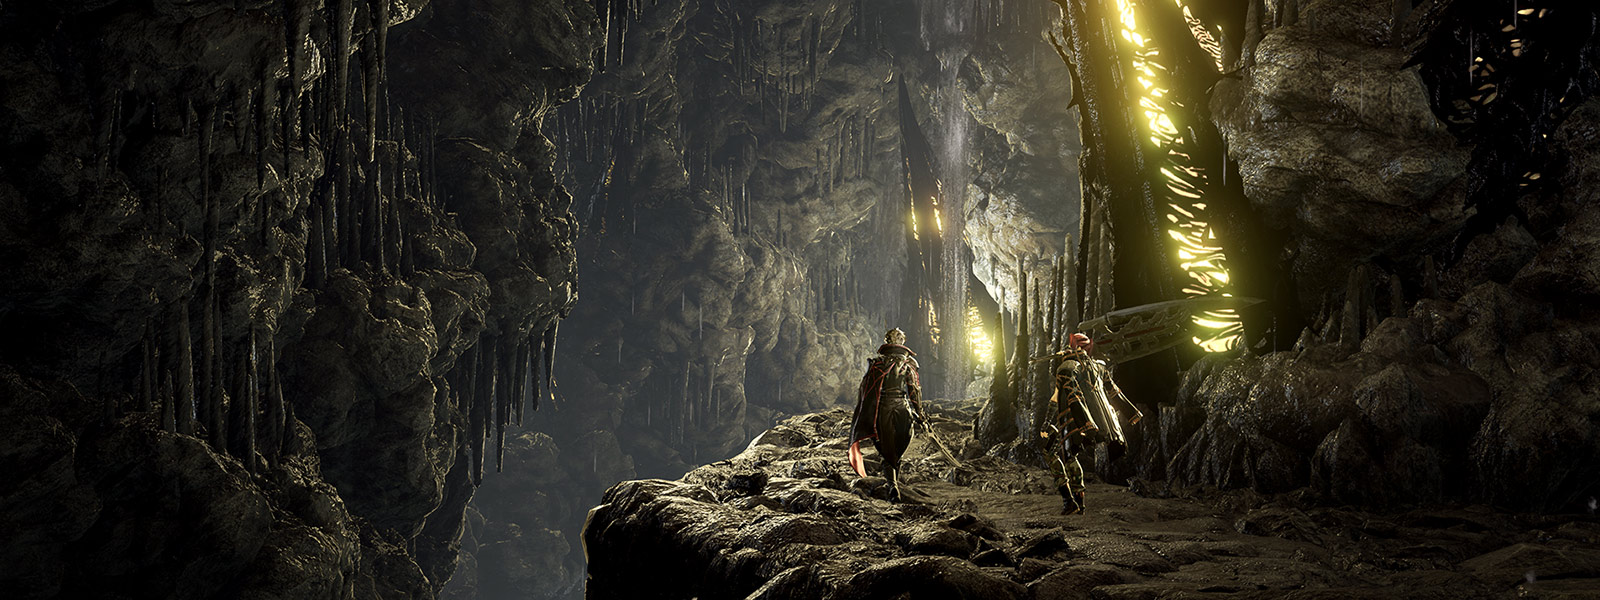 Code vein characters walk through cave of the Lost